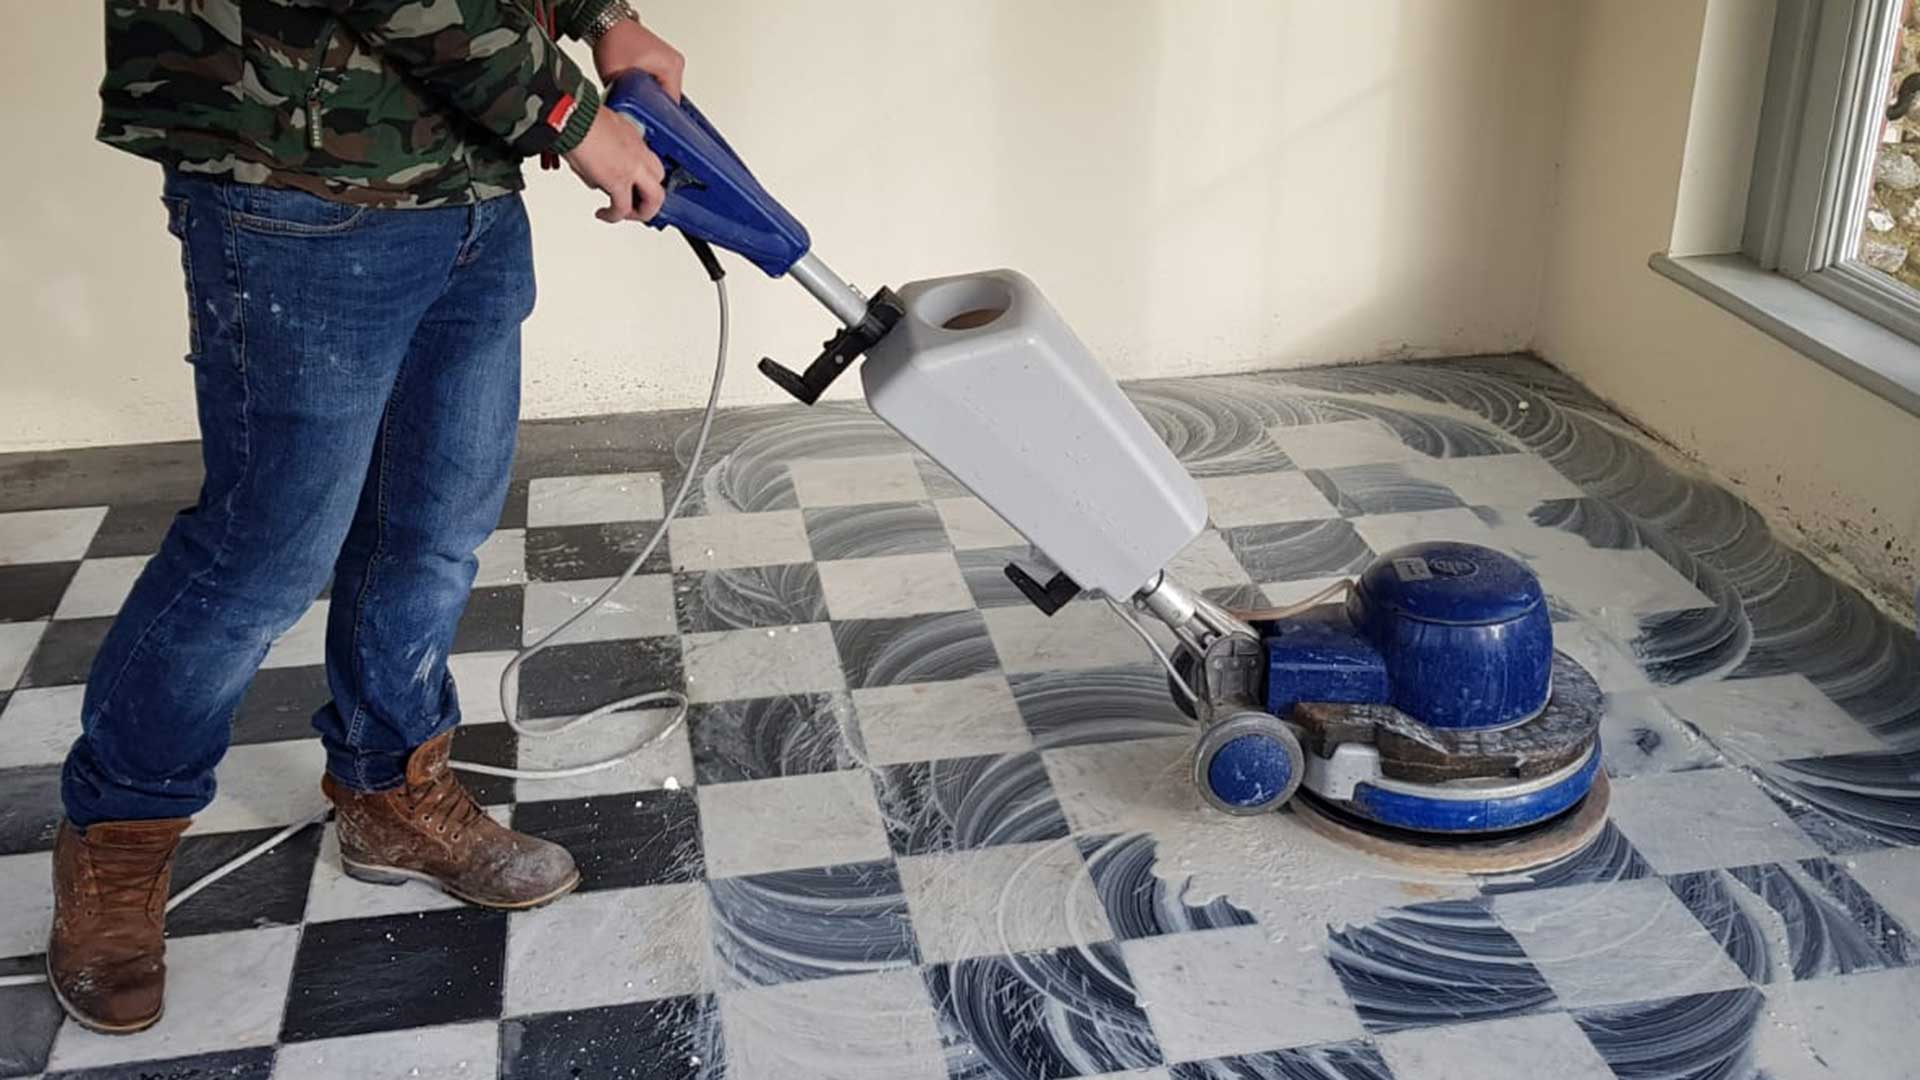 Operative using a floor cleaner on tiled floor